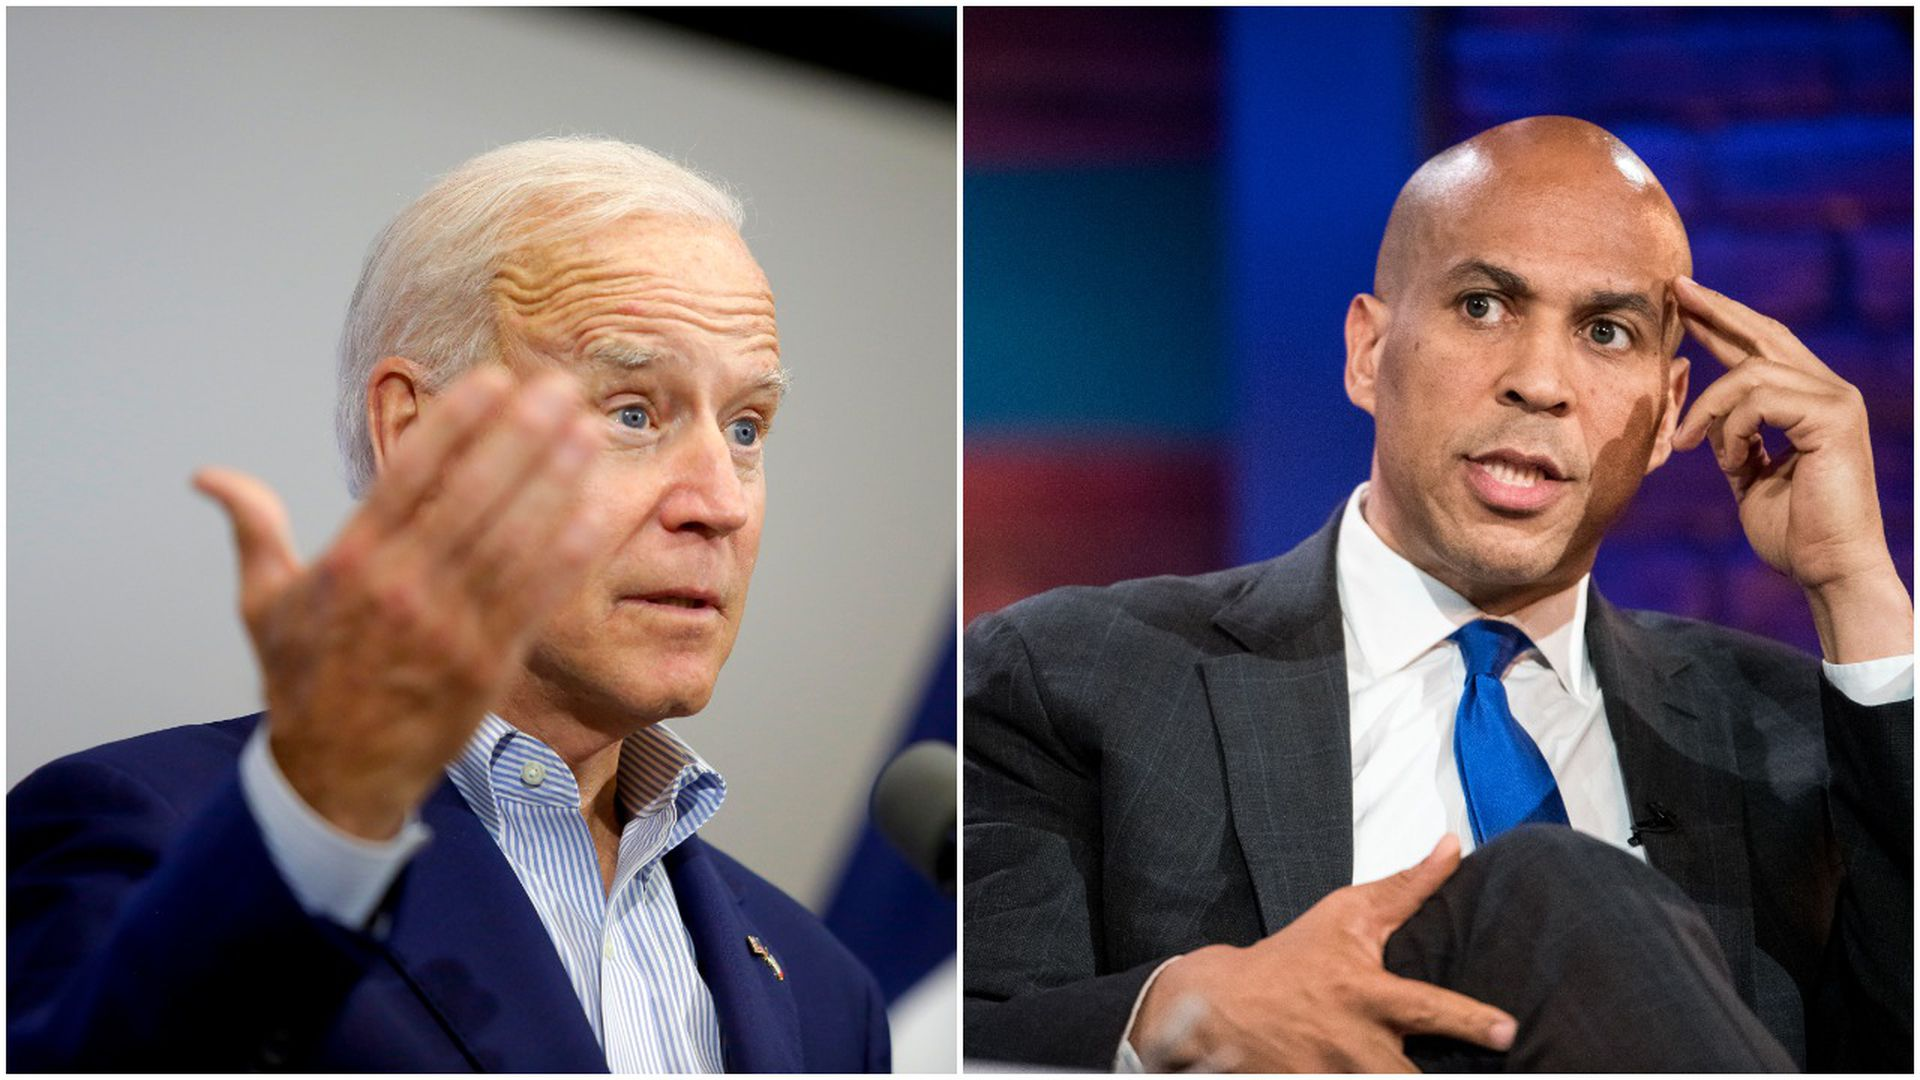 This image is a split screen of Joe Biden and Cory Booker.